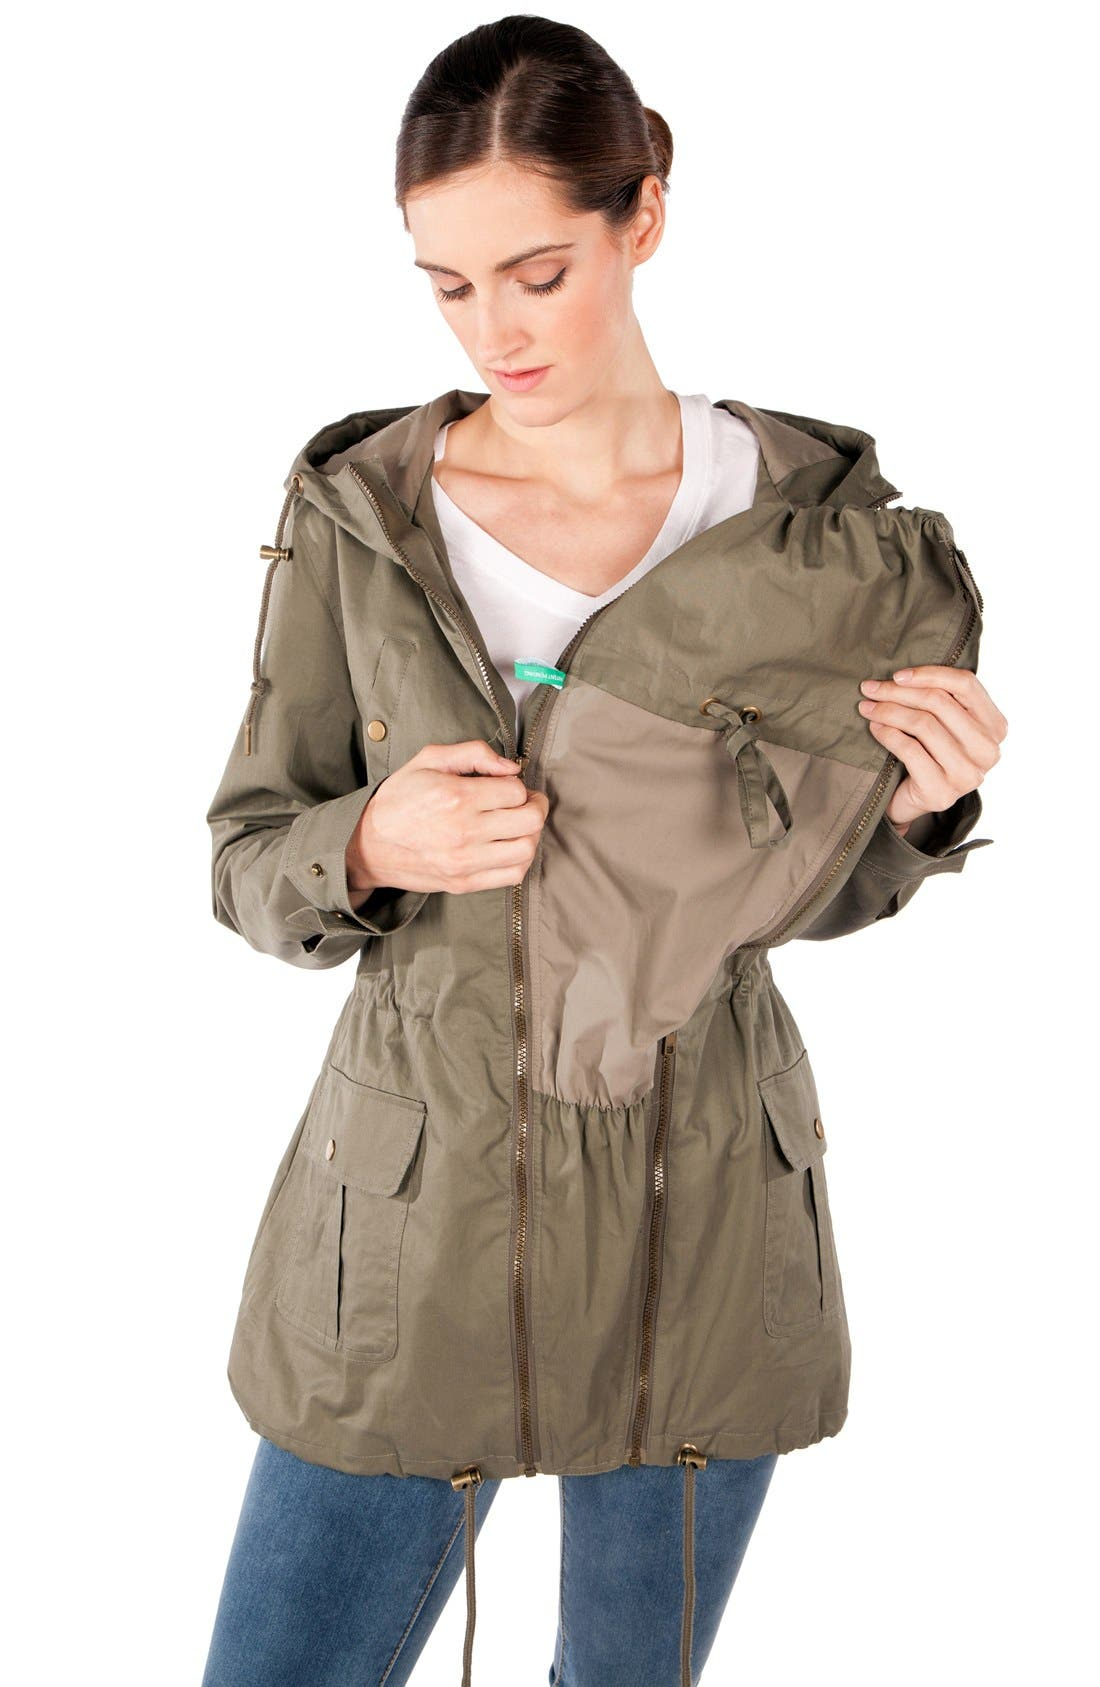 Convertible Military 3-in-1 Maternity/Nursing Jacket,                             Alternate thumbnail 10, color,                             KHAKI GREEN